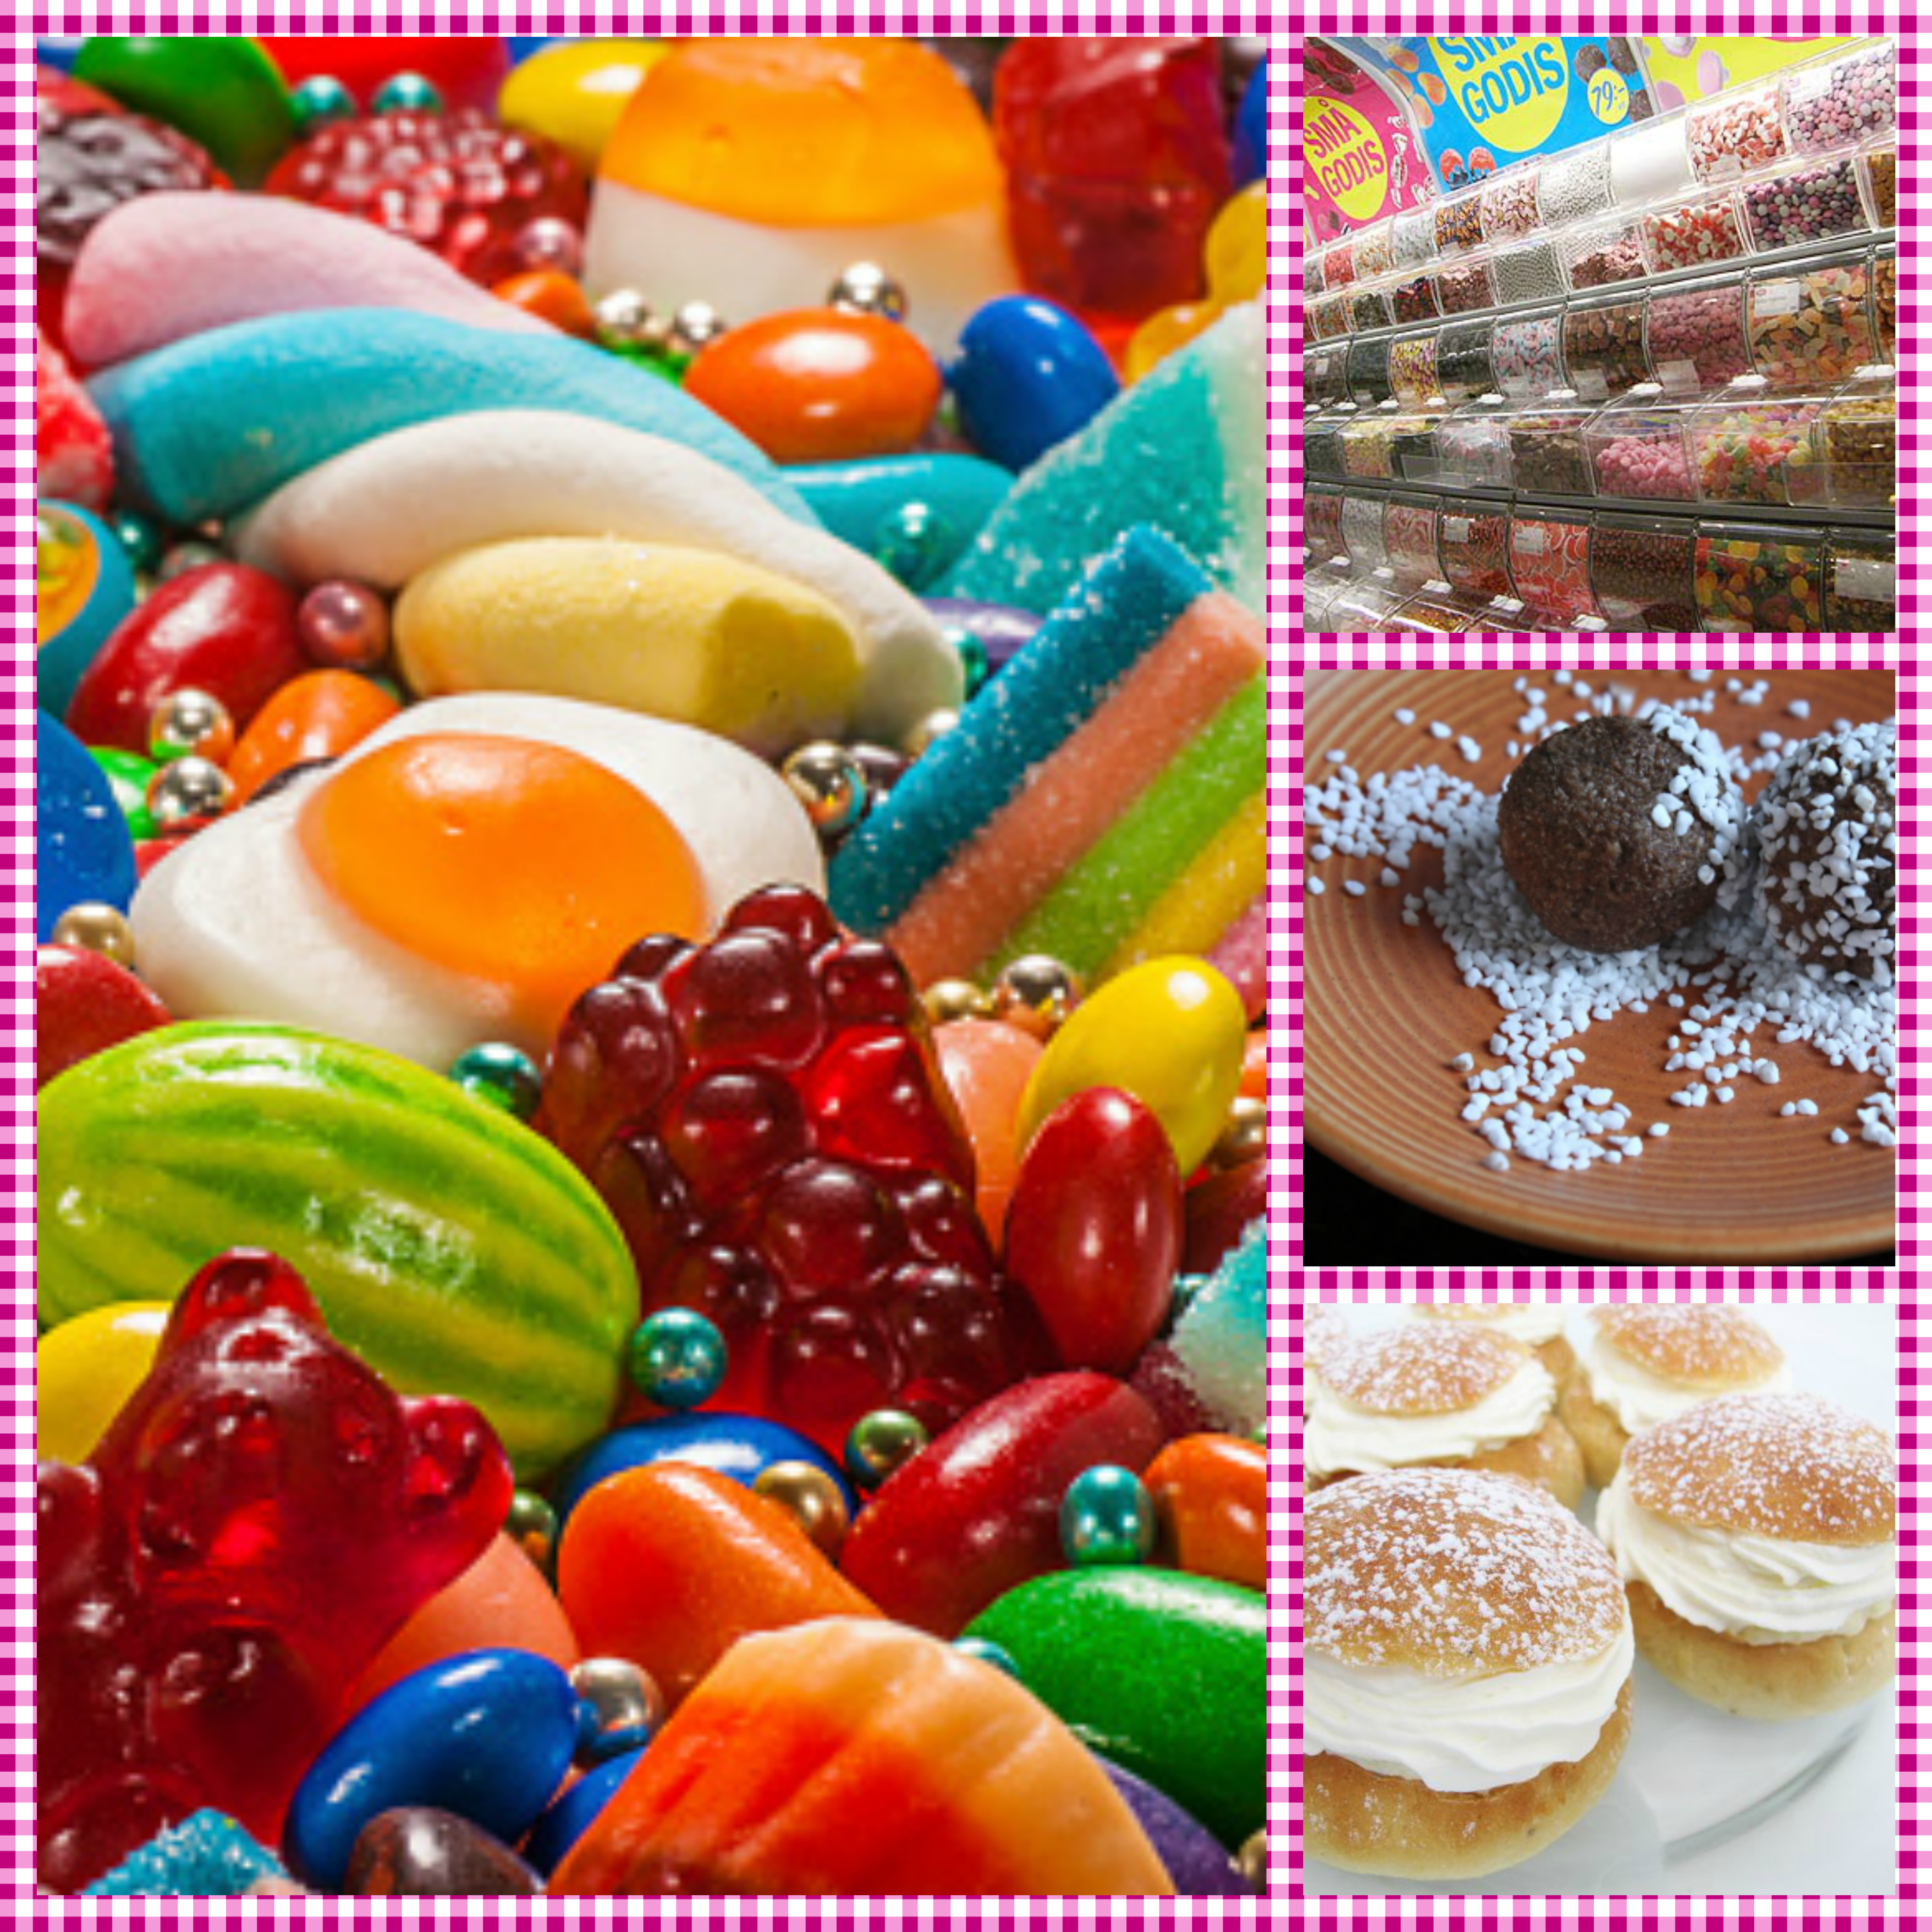 Swedish Candy stores and desserts